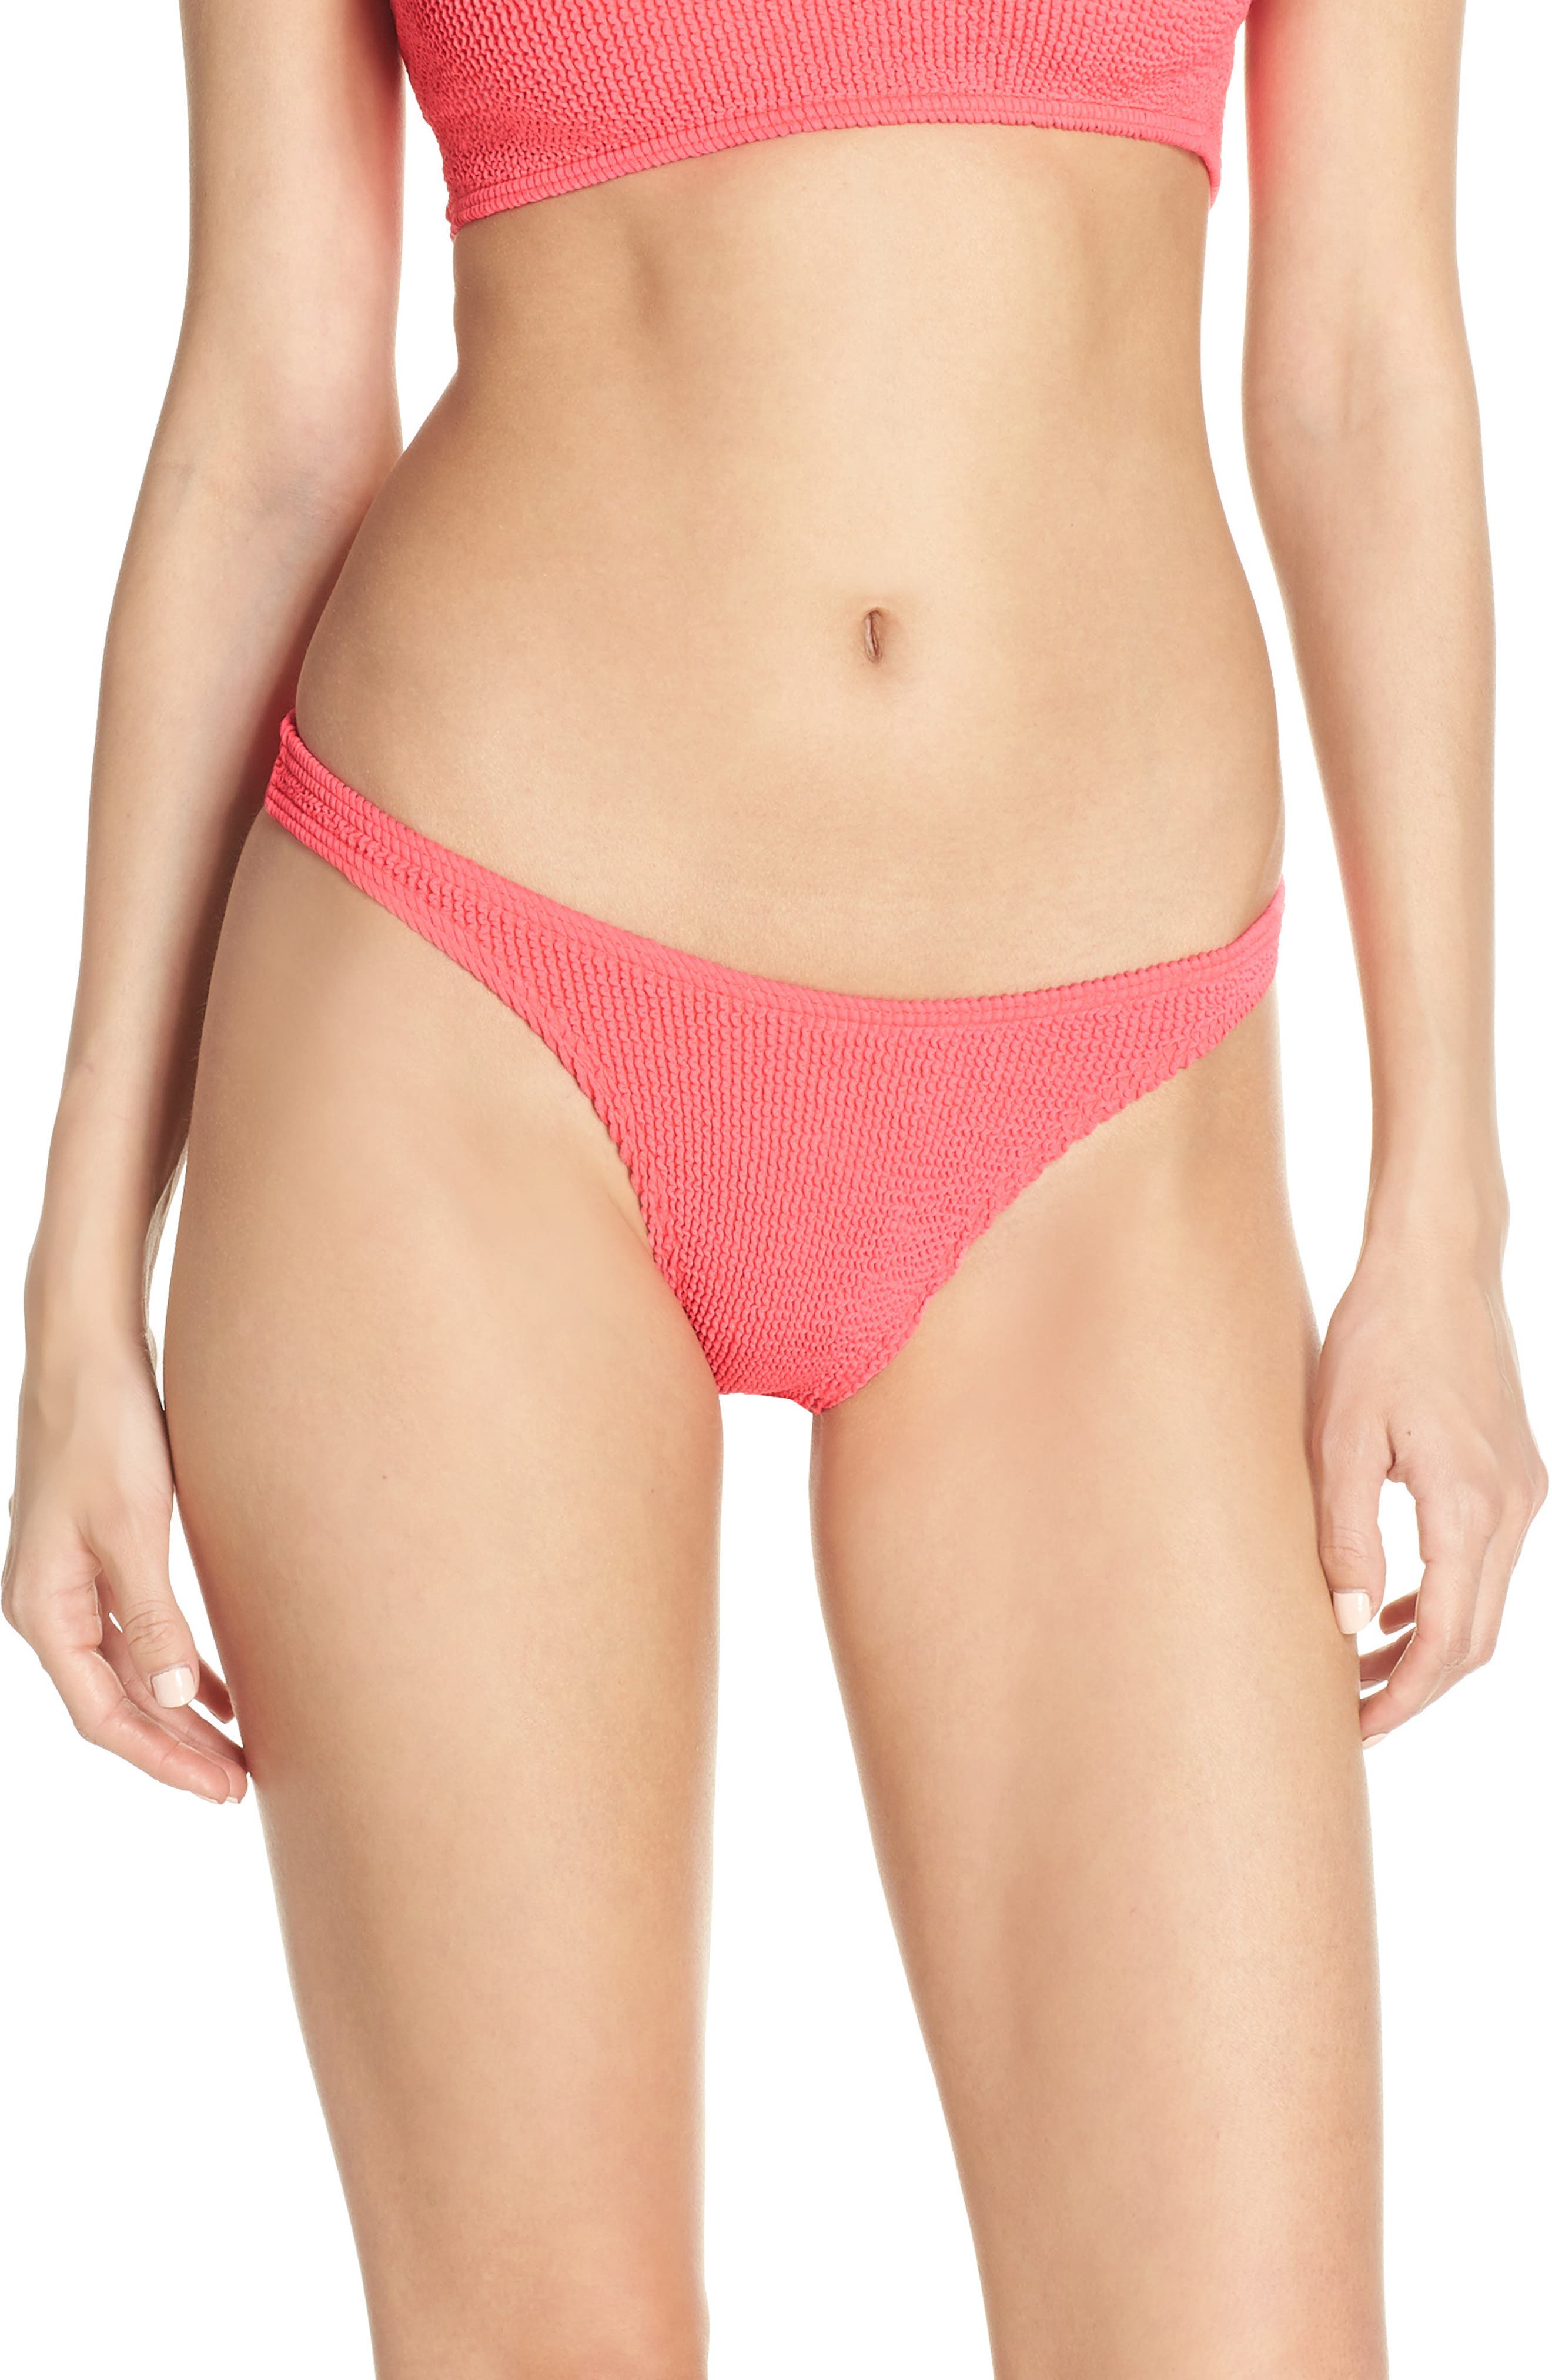 Bound By Bond-Eye The Scene High-Cut Ribbed Bikini Bottoms, Size One Size - Pink